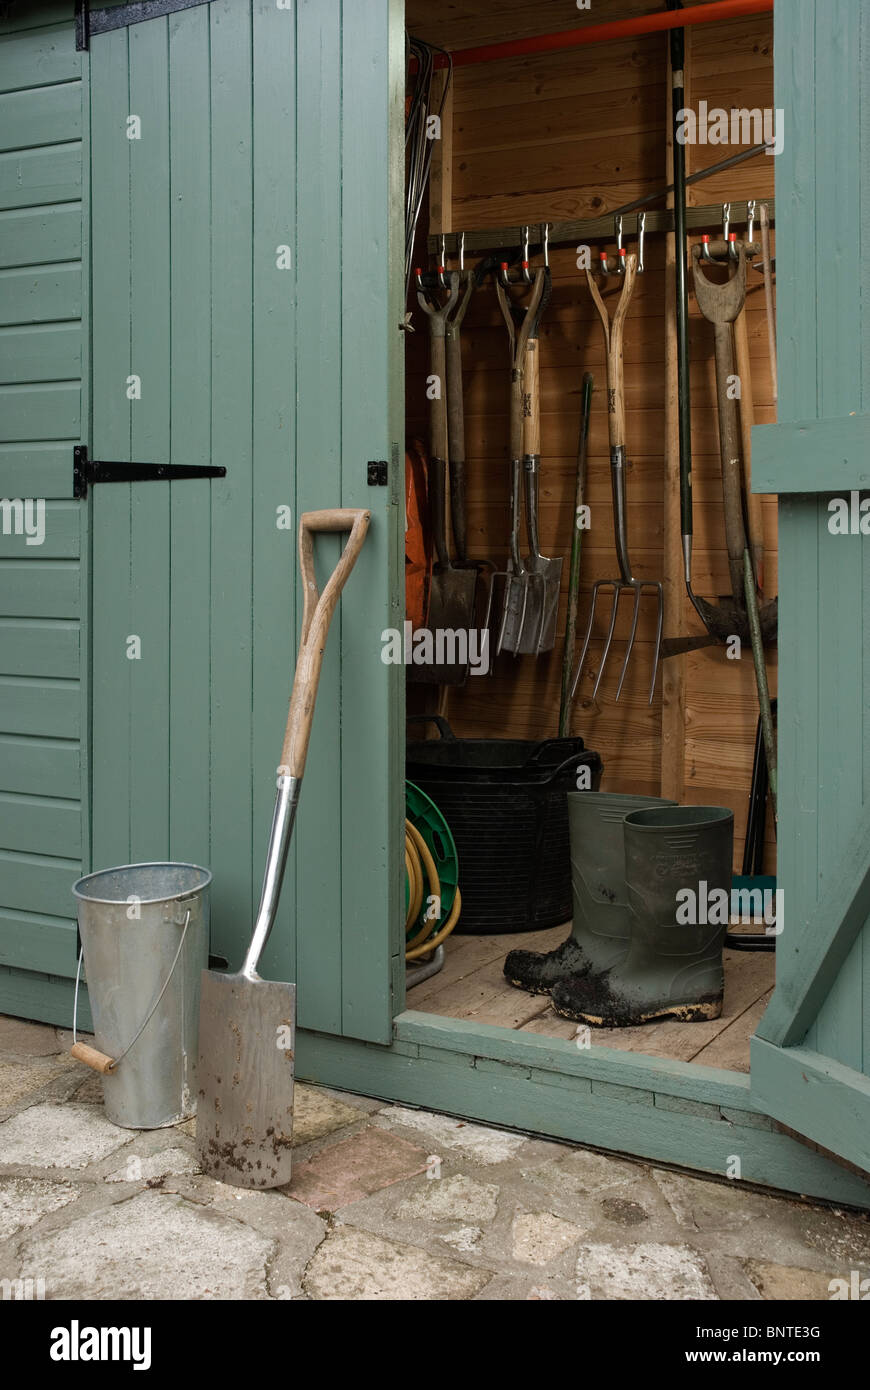 Spade and muddy boots by a garden shed. - Stock Image